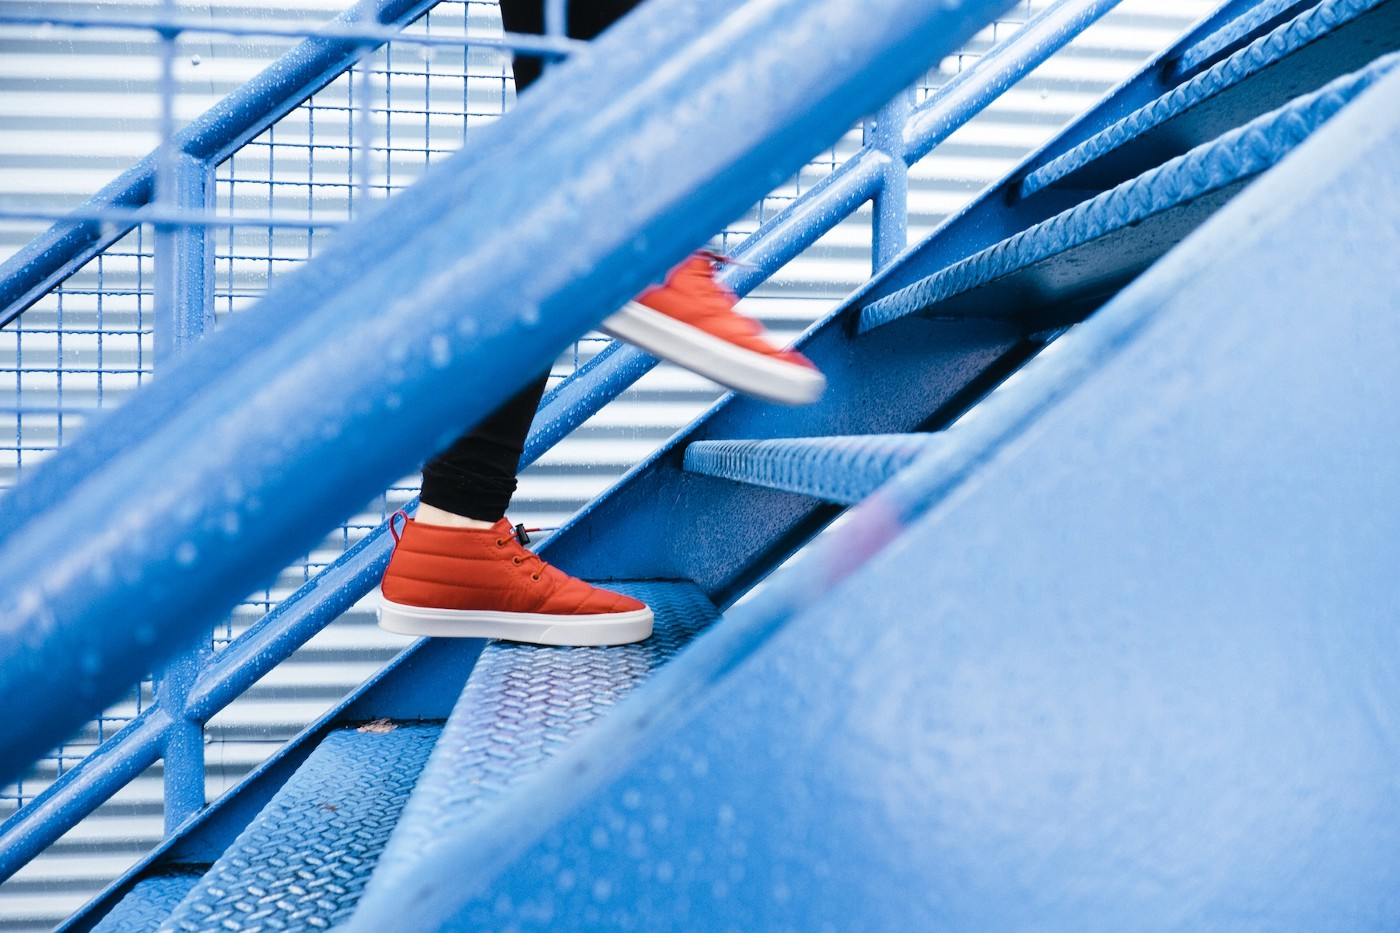 A person with red shoes walking up blue steps; side angle